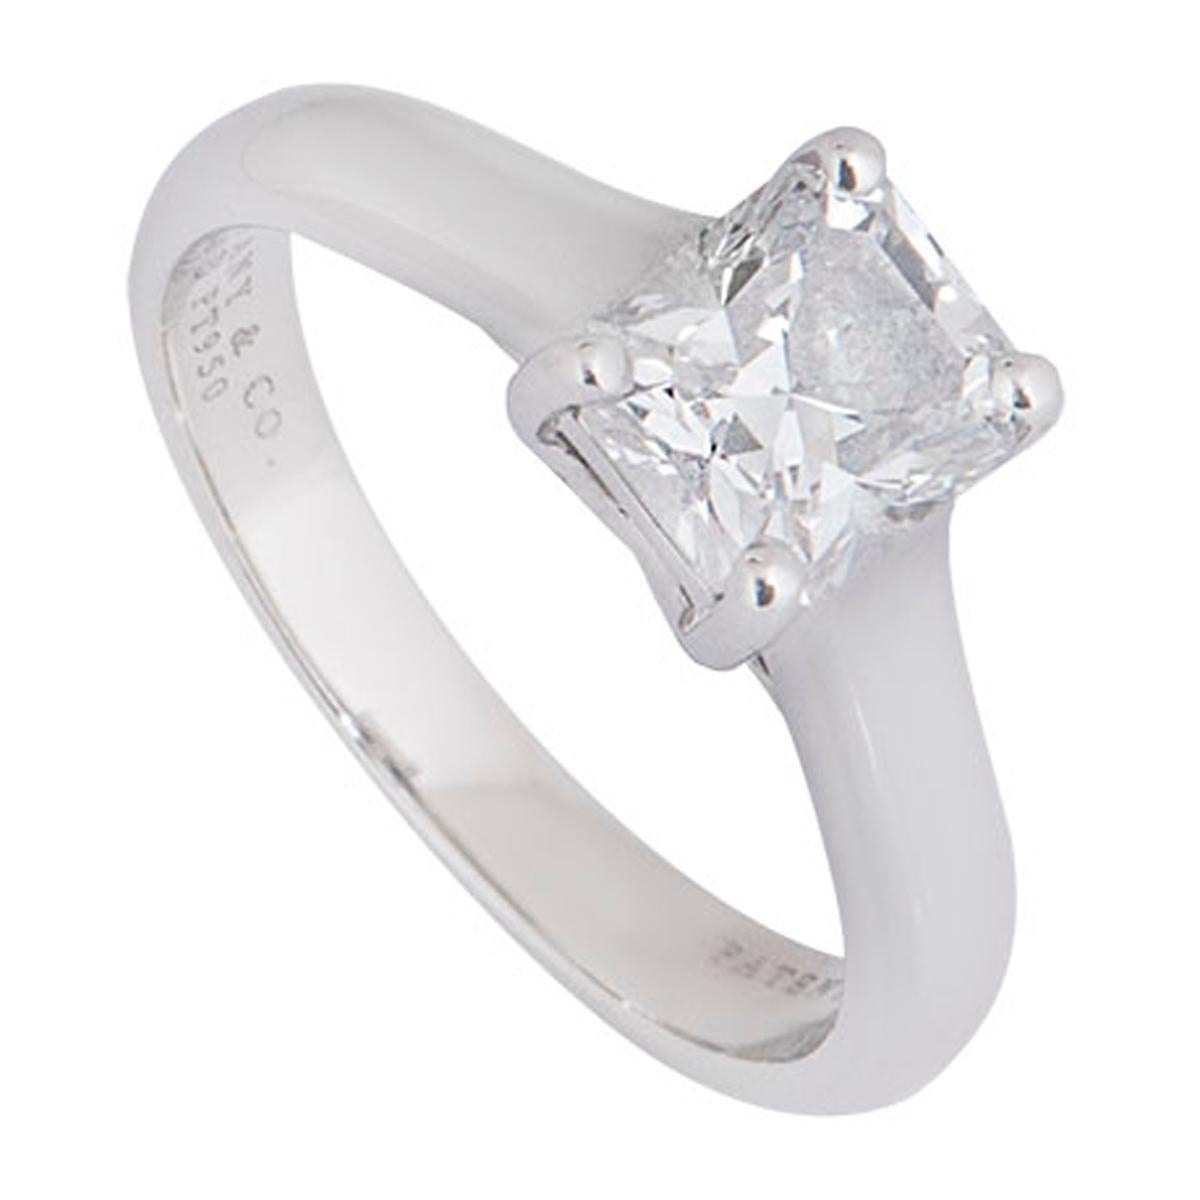 Fine Jewelry Side Stones Channel Set 18k Yellow Gold Sale Price Trend Mark 1.42 Carats Diamond Ring Solitaire